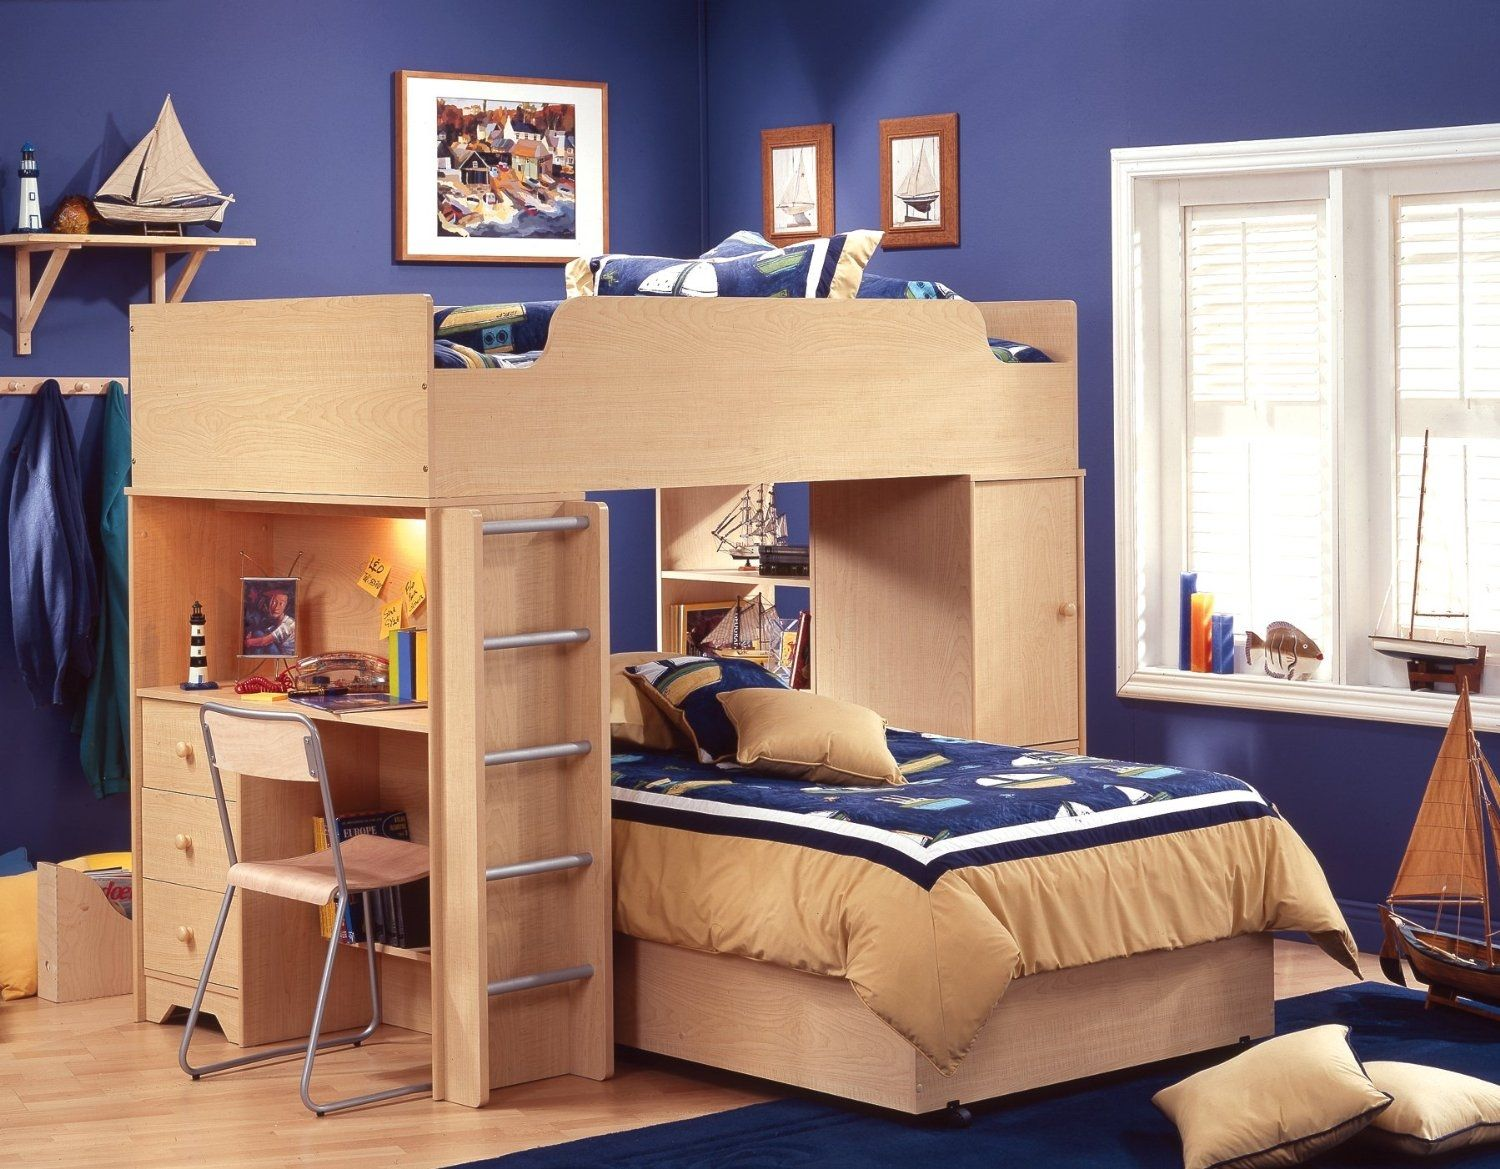 Bunk Beds For Kids With Desks Underneath Compact Terracotta Tile Wall Mirrors